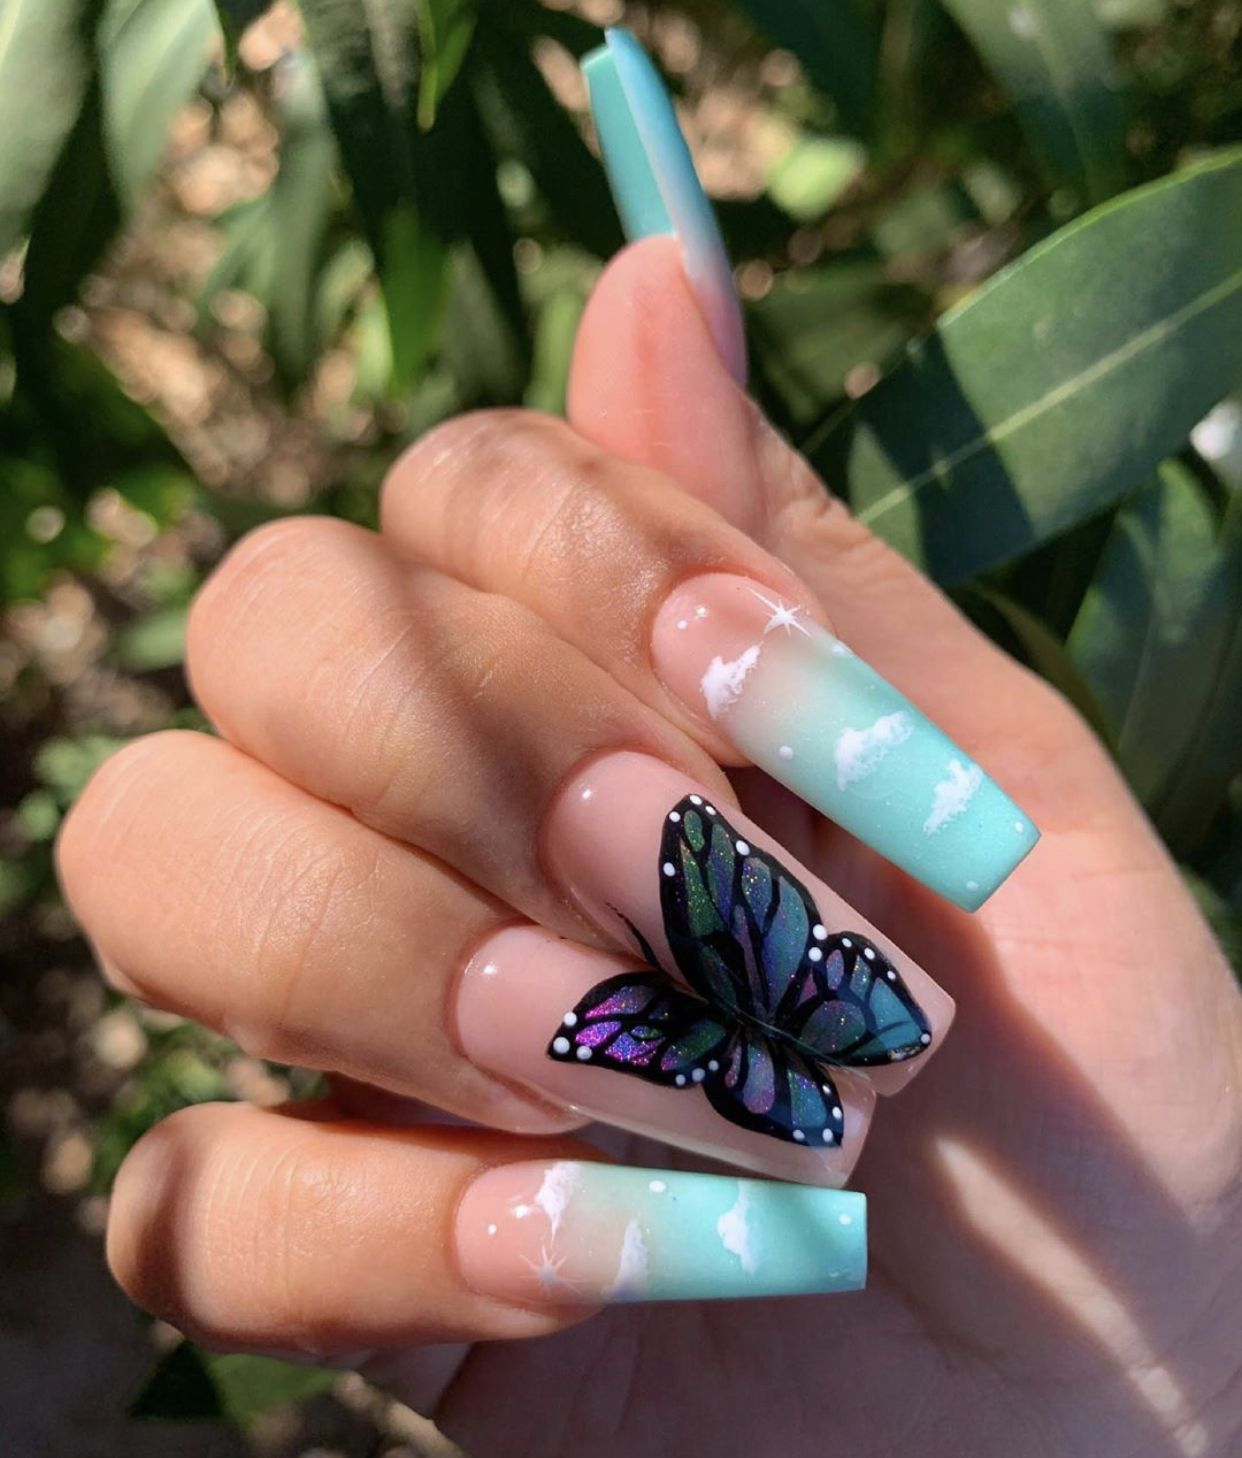 Cloud Butterfly nails   Fire nails, Cute nails, Trendy nails